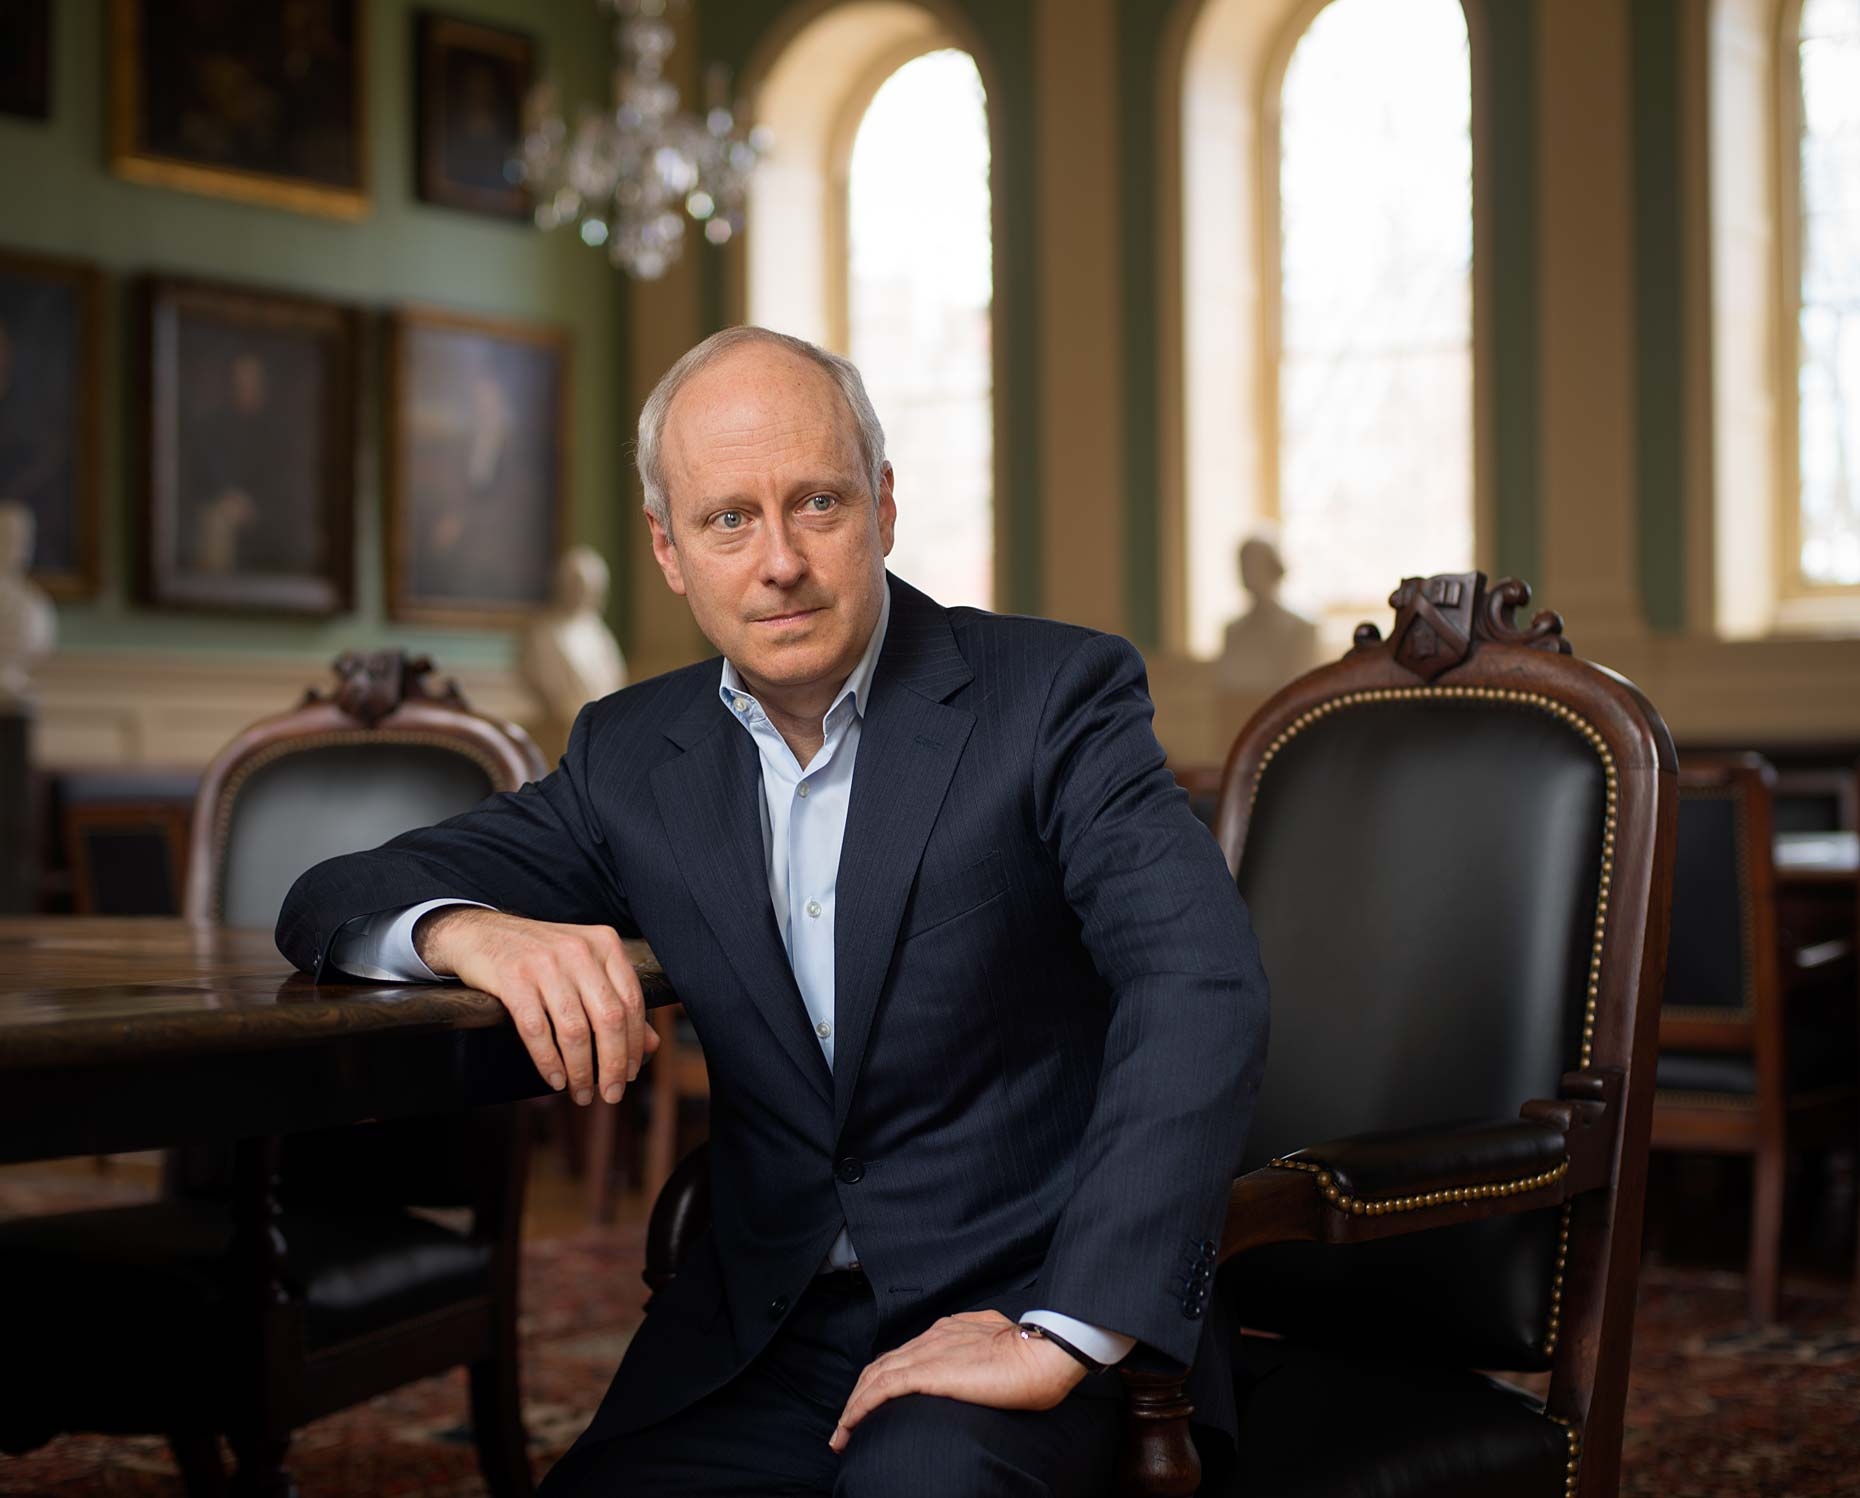 justice with michel sandel Justice with michel sandel silvia molina university of texas at el paso justice with michel sandel harvard university professor dr michel sandel introduces two lecture episodes that discuss a number of philosophy related issues.